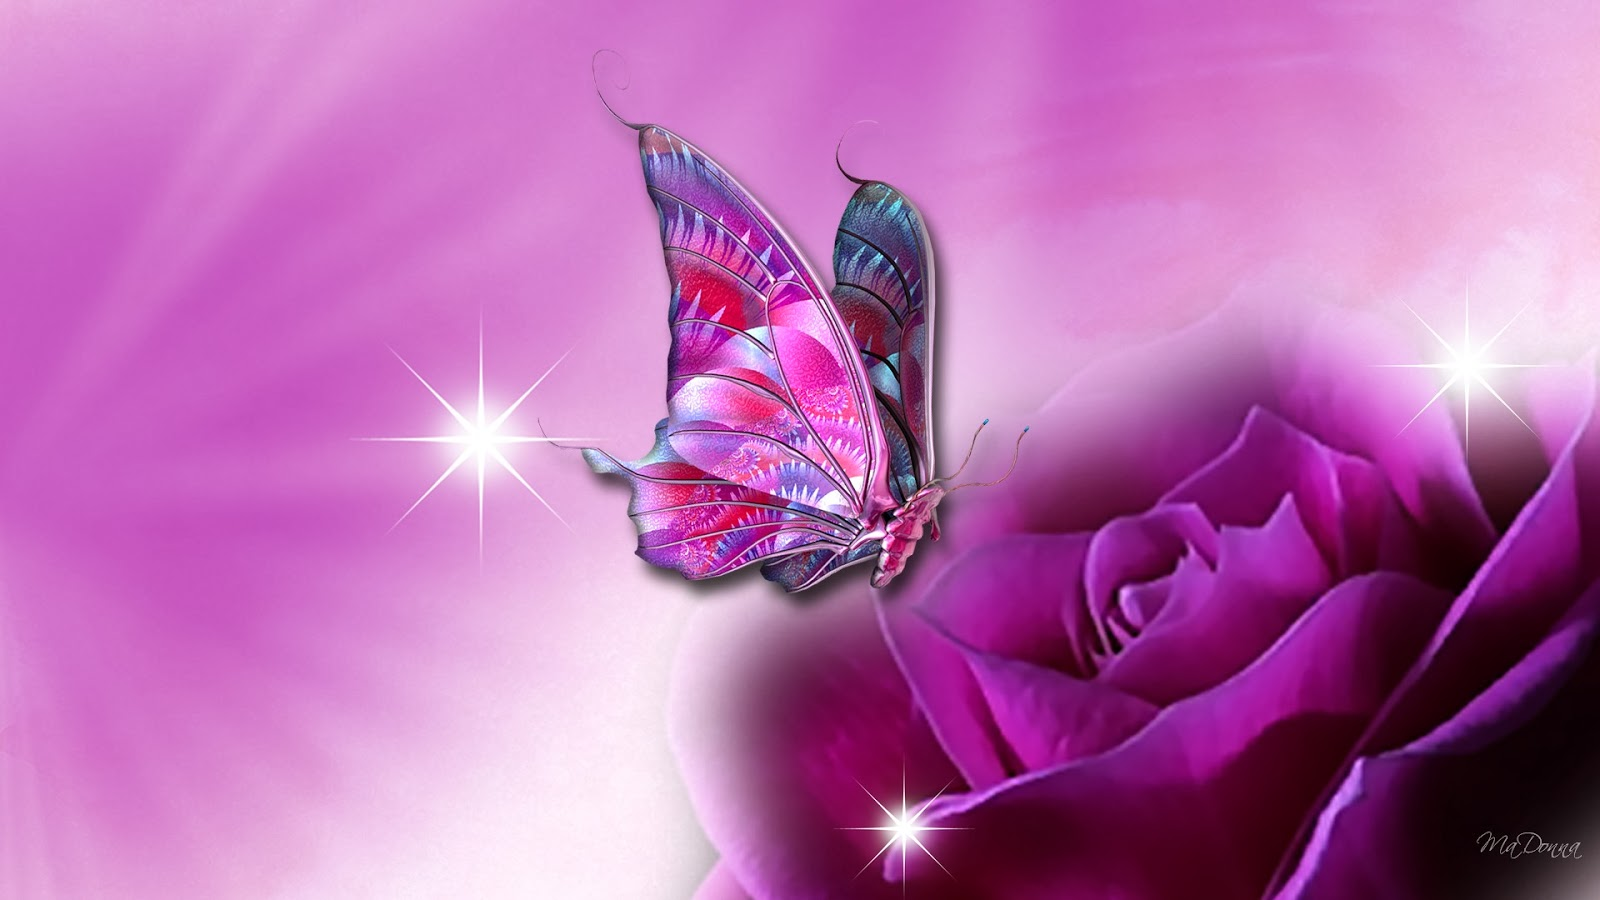 Pink and purple roses wallpapers puspa wallpapers the rose flowers represent love and romance as it meanings however all rose flowers have its own attributed meanings depending on the color it possesses mightylinksfo